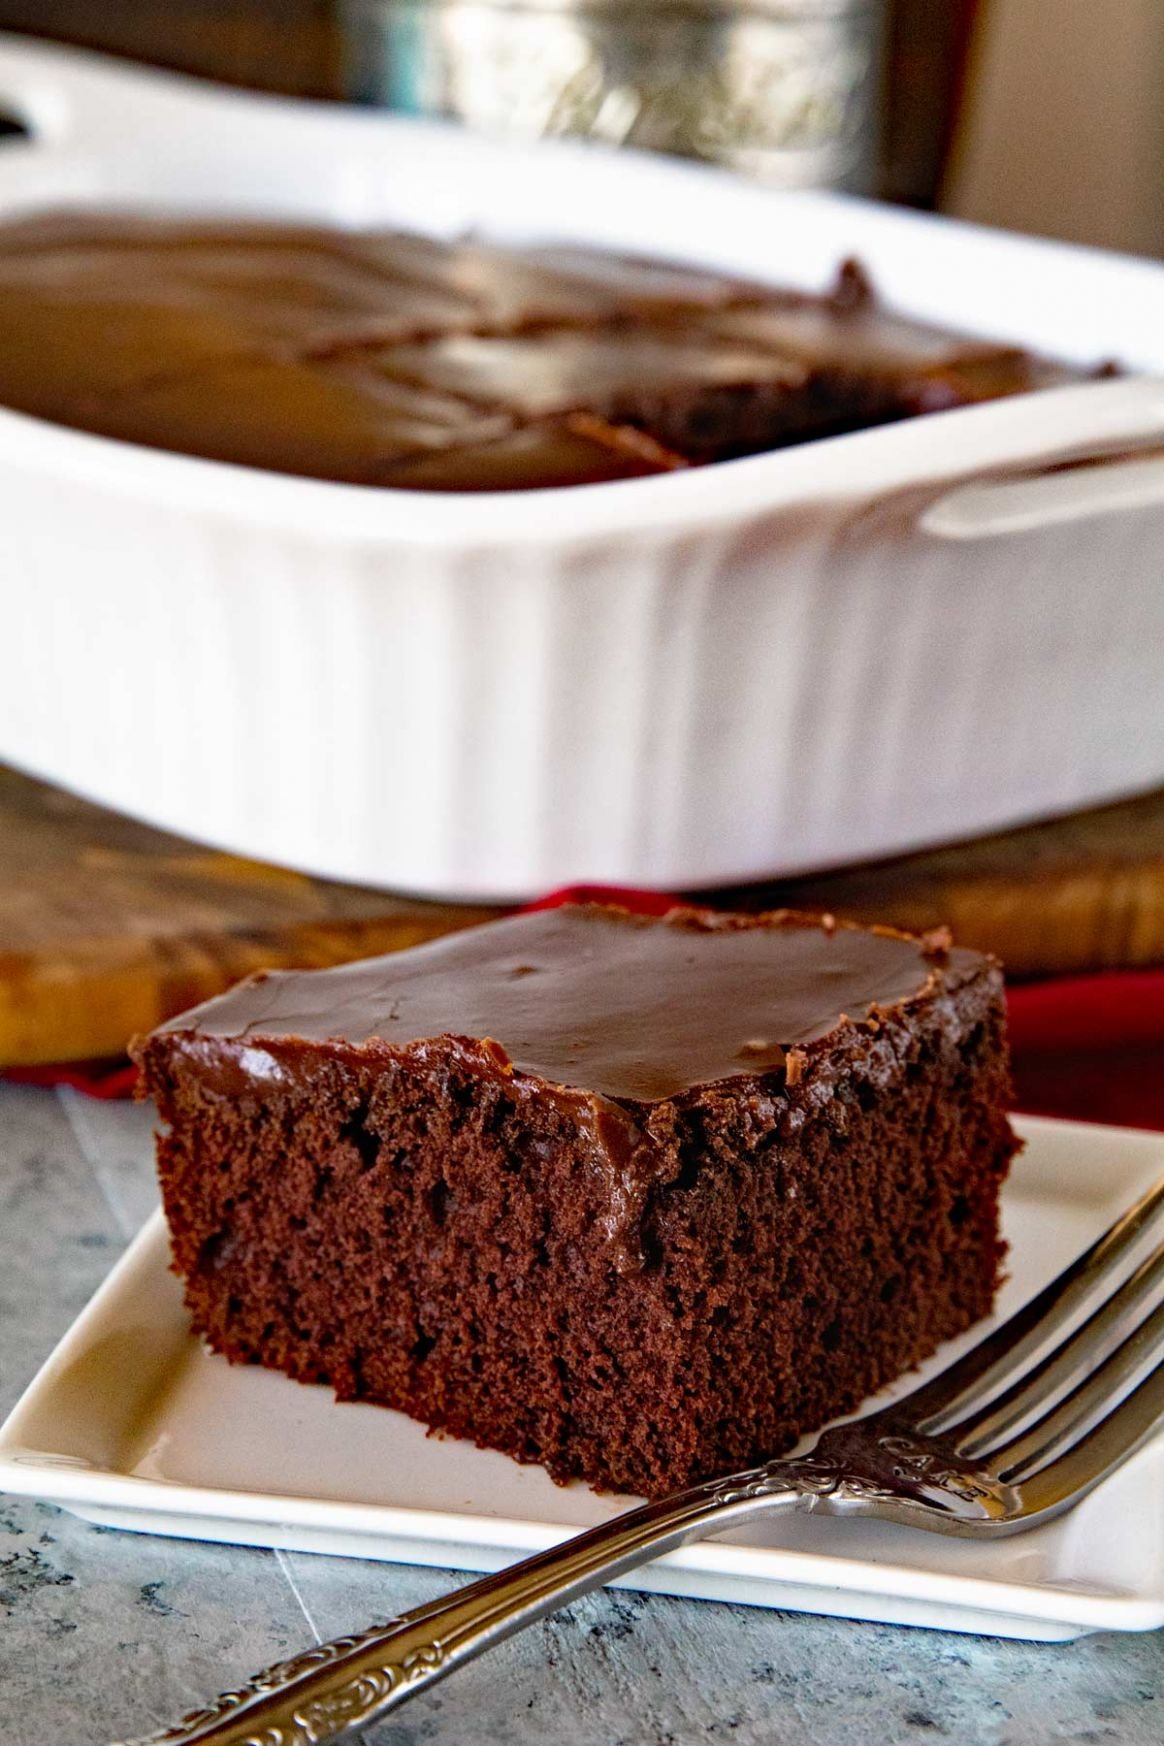 Homemade Chocolate Cake with Chocolate Frosting - Recipes Chocolate Cake Homemade